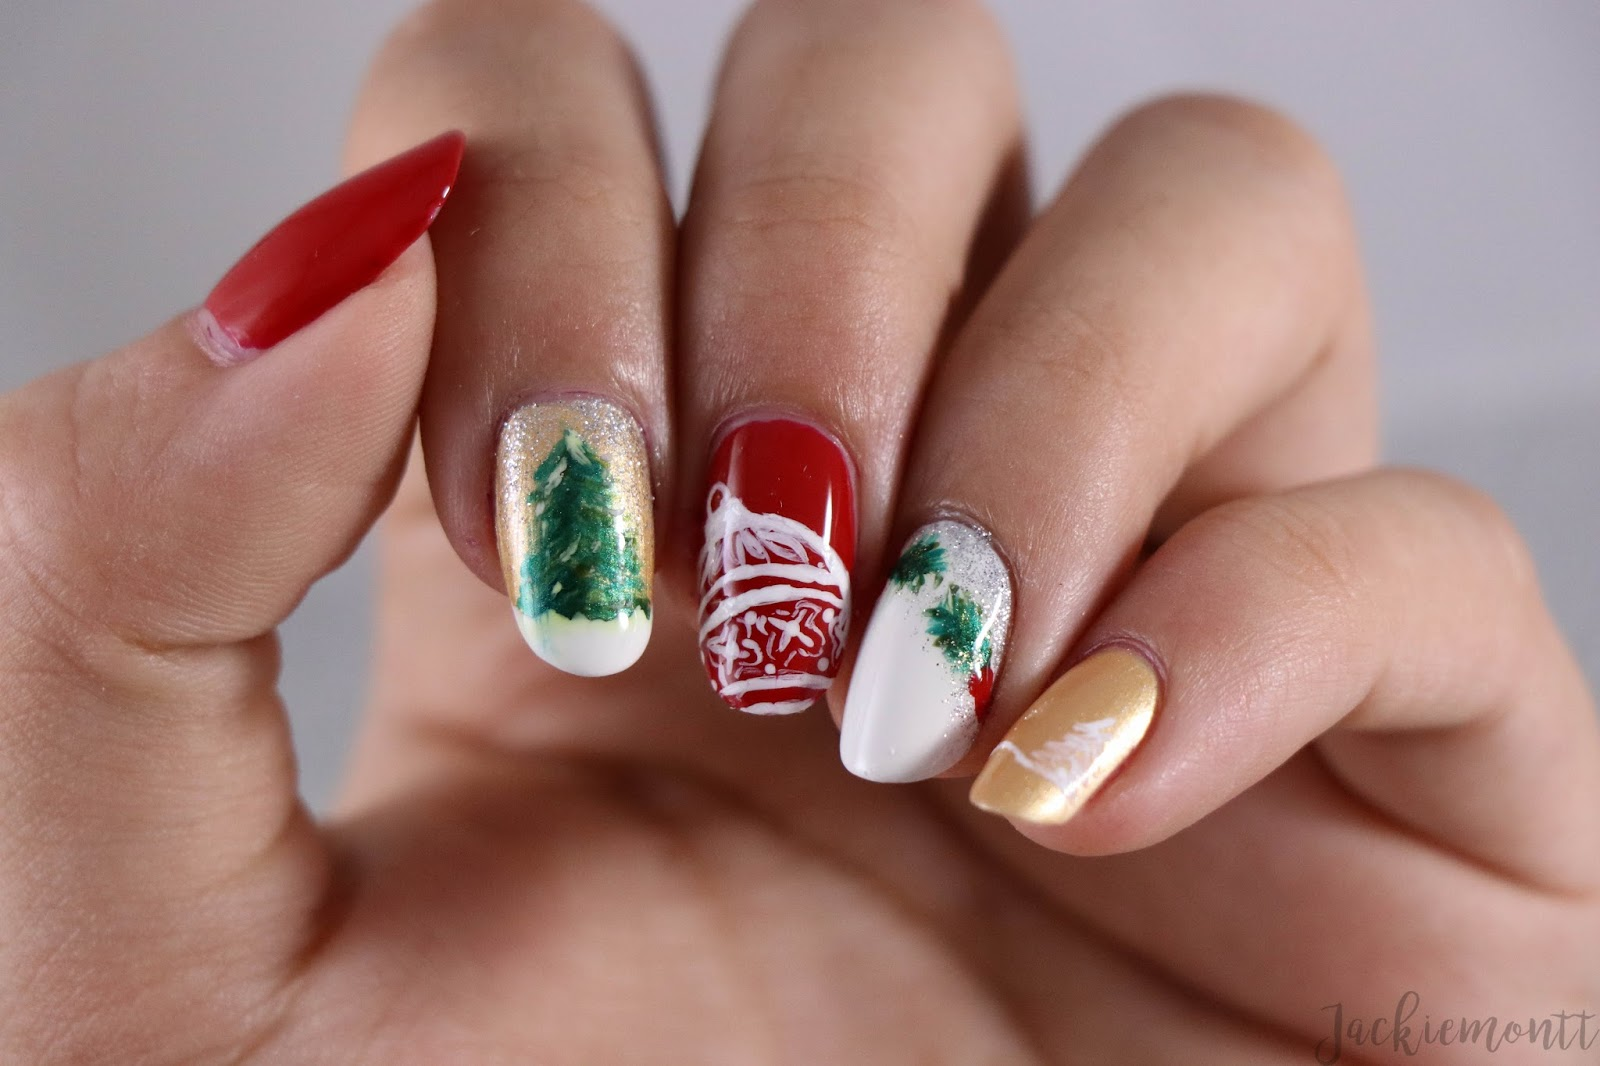 Happy Holidays Collage Nail Art Jackiemontt